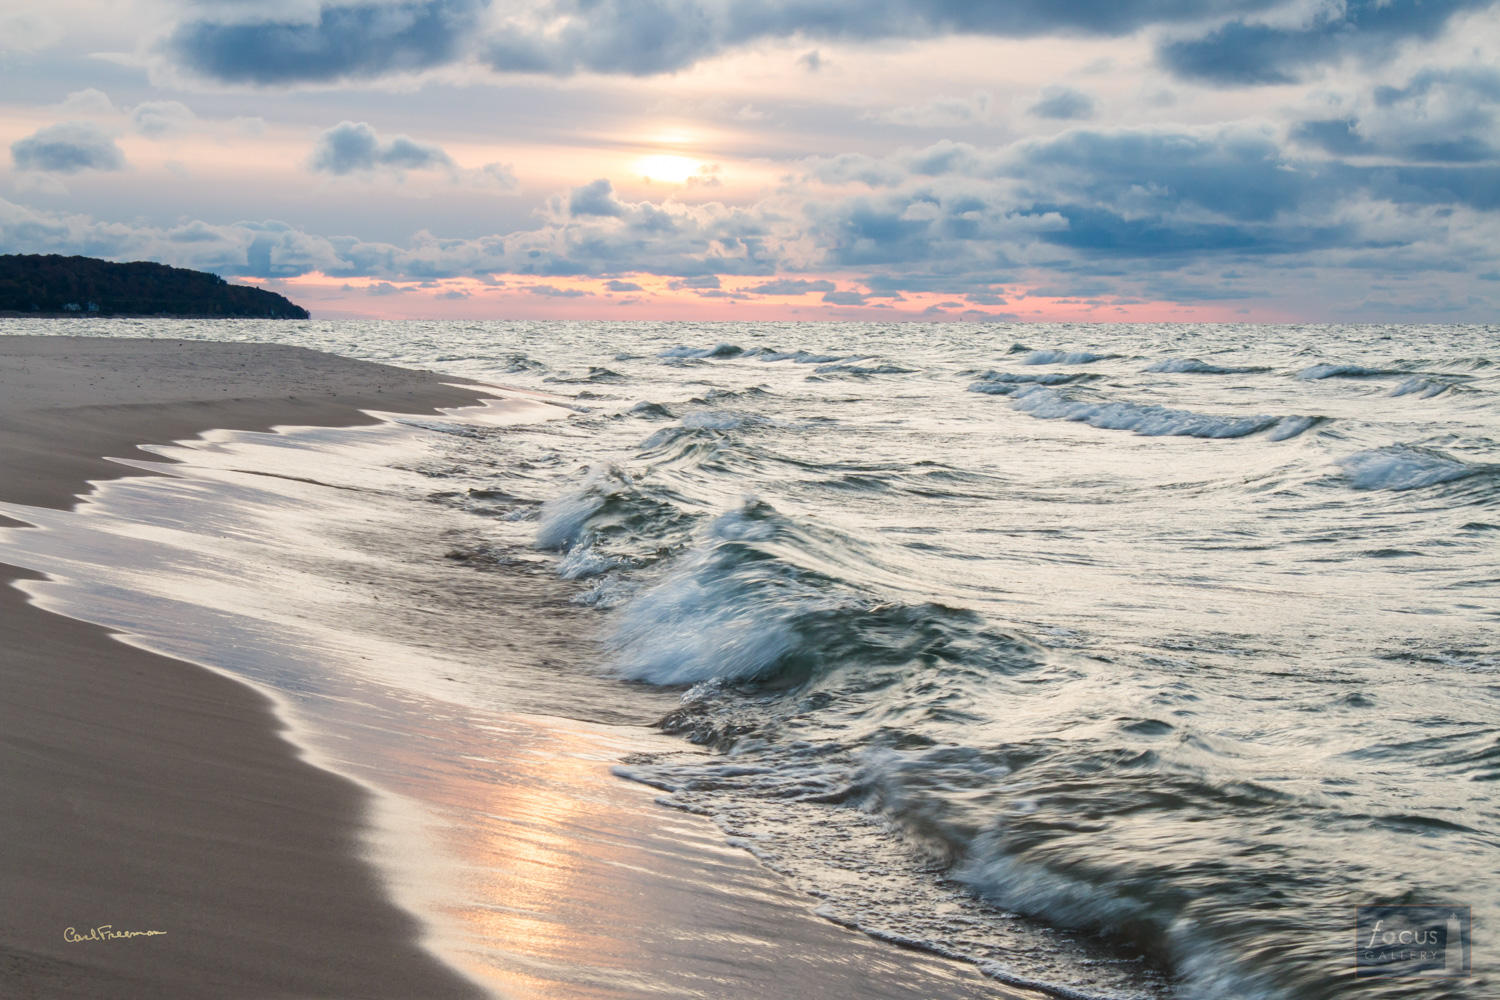 Photo © Carl Freeman Outer beach at Platte Point. Waves washing on the shore have a timeless feeling.